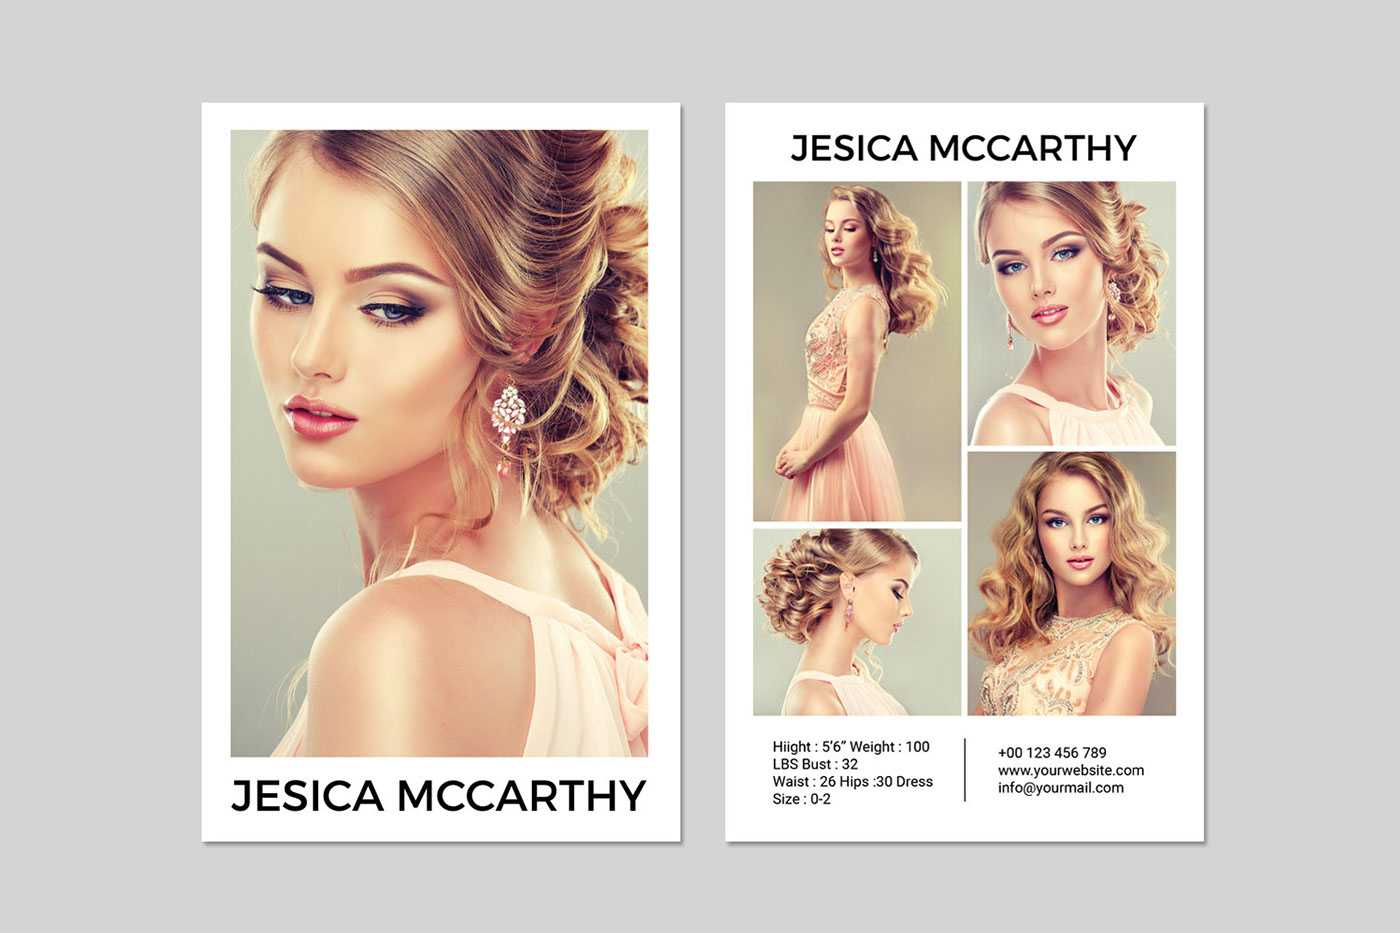 031 Model Comp Card Template Outstanding Ideas Psd Free Within Comp Card Template Psd